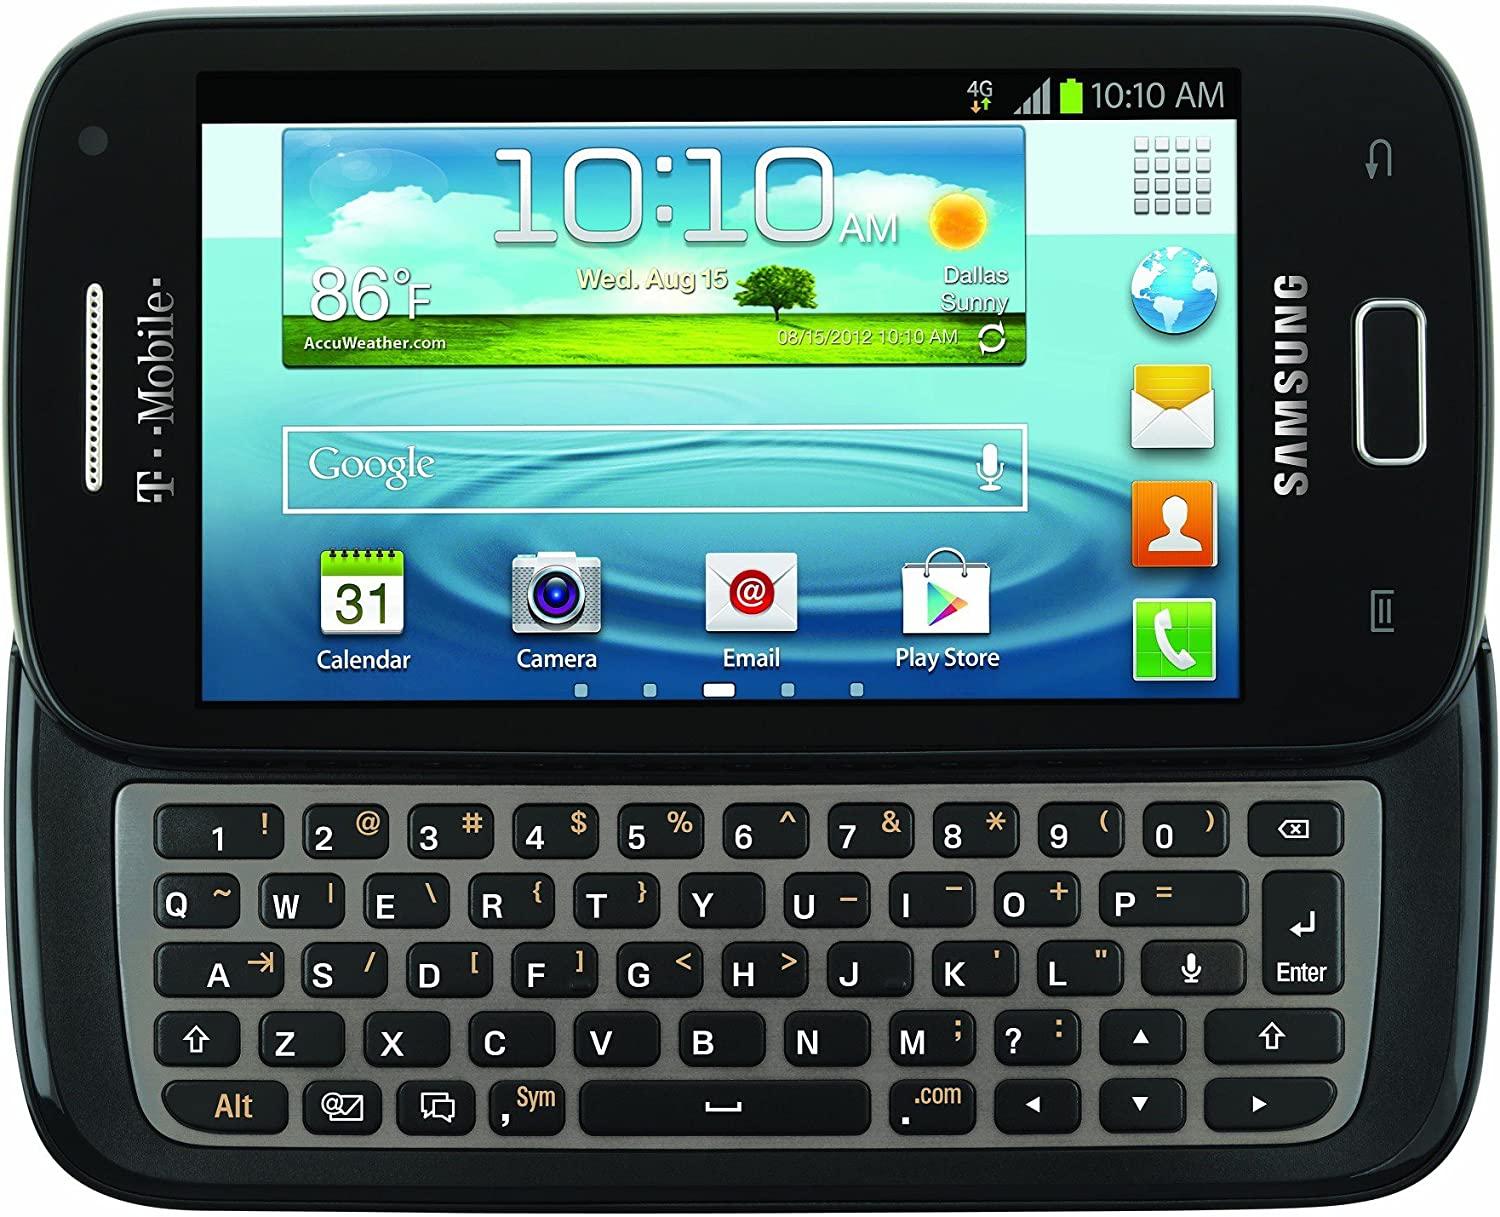 """Samsung T699 """"Galaxy S Relay 4G"""" T-Mobile Android Phone - Black"""